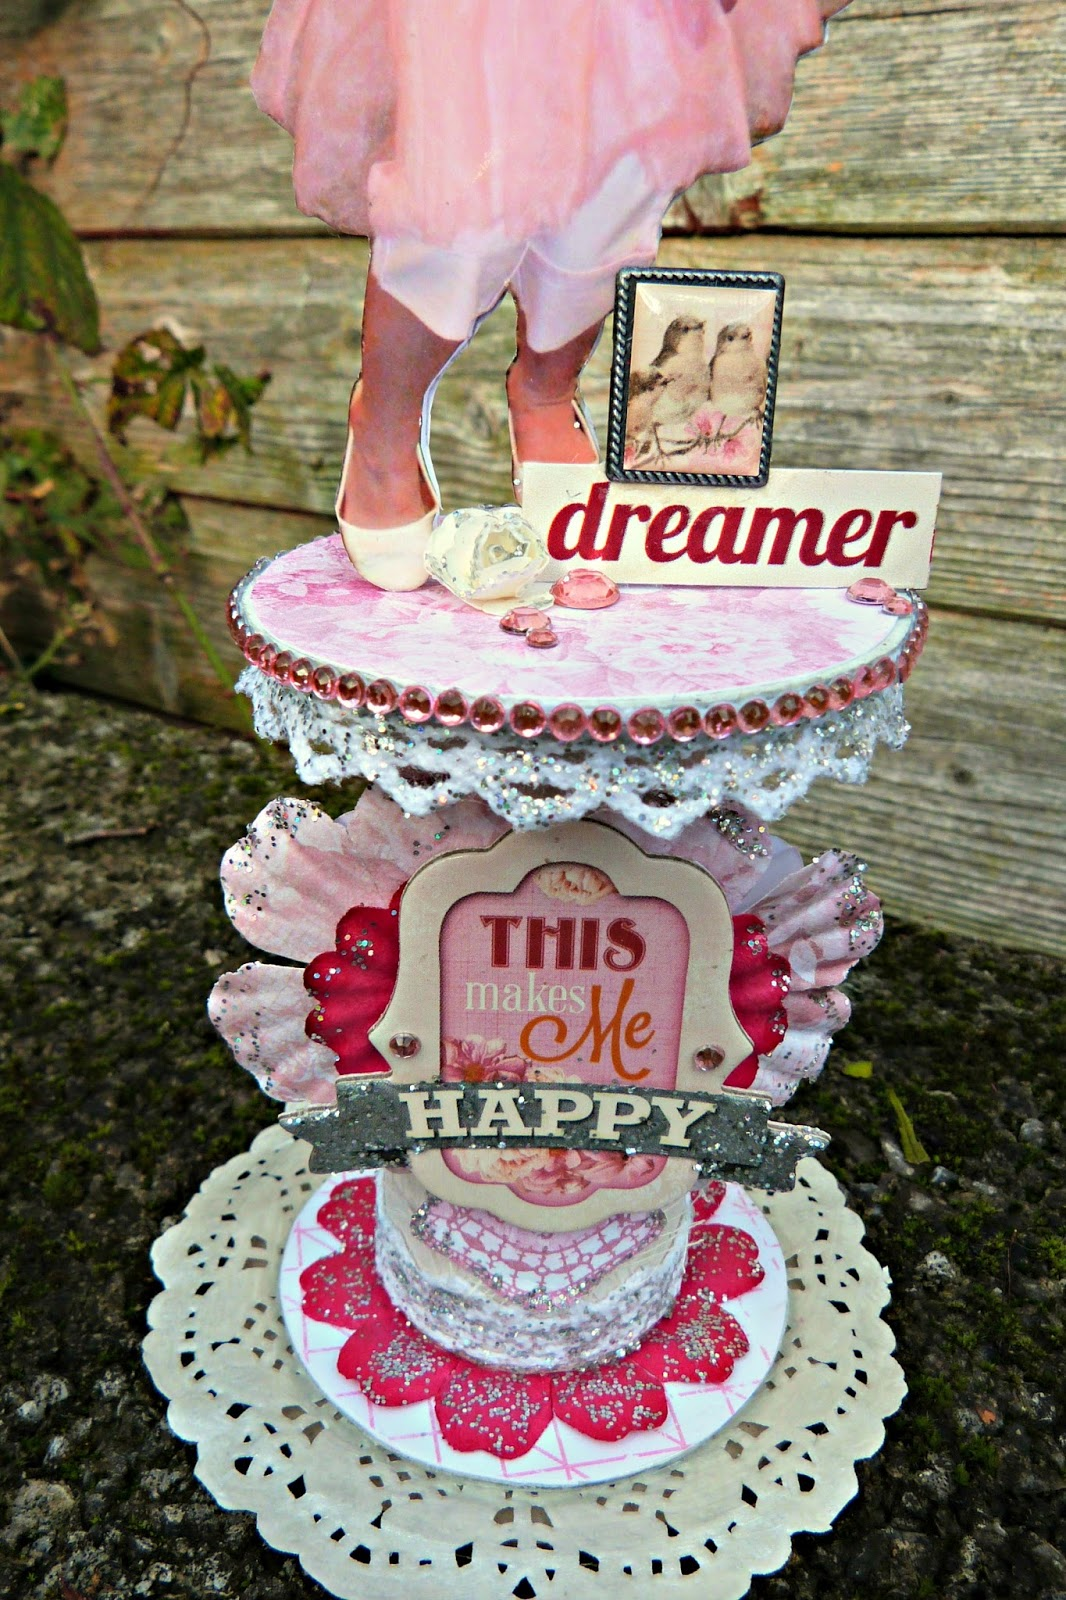 Dreamer Altered Spool by Tracee Provis Madeline Bo Bunny 02